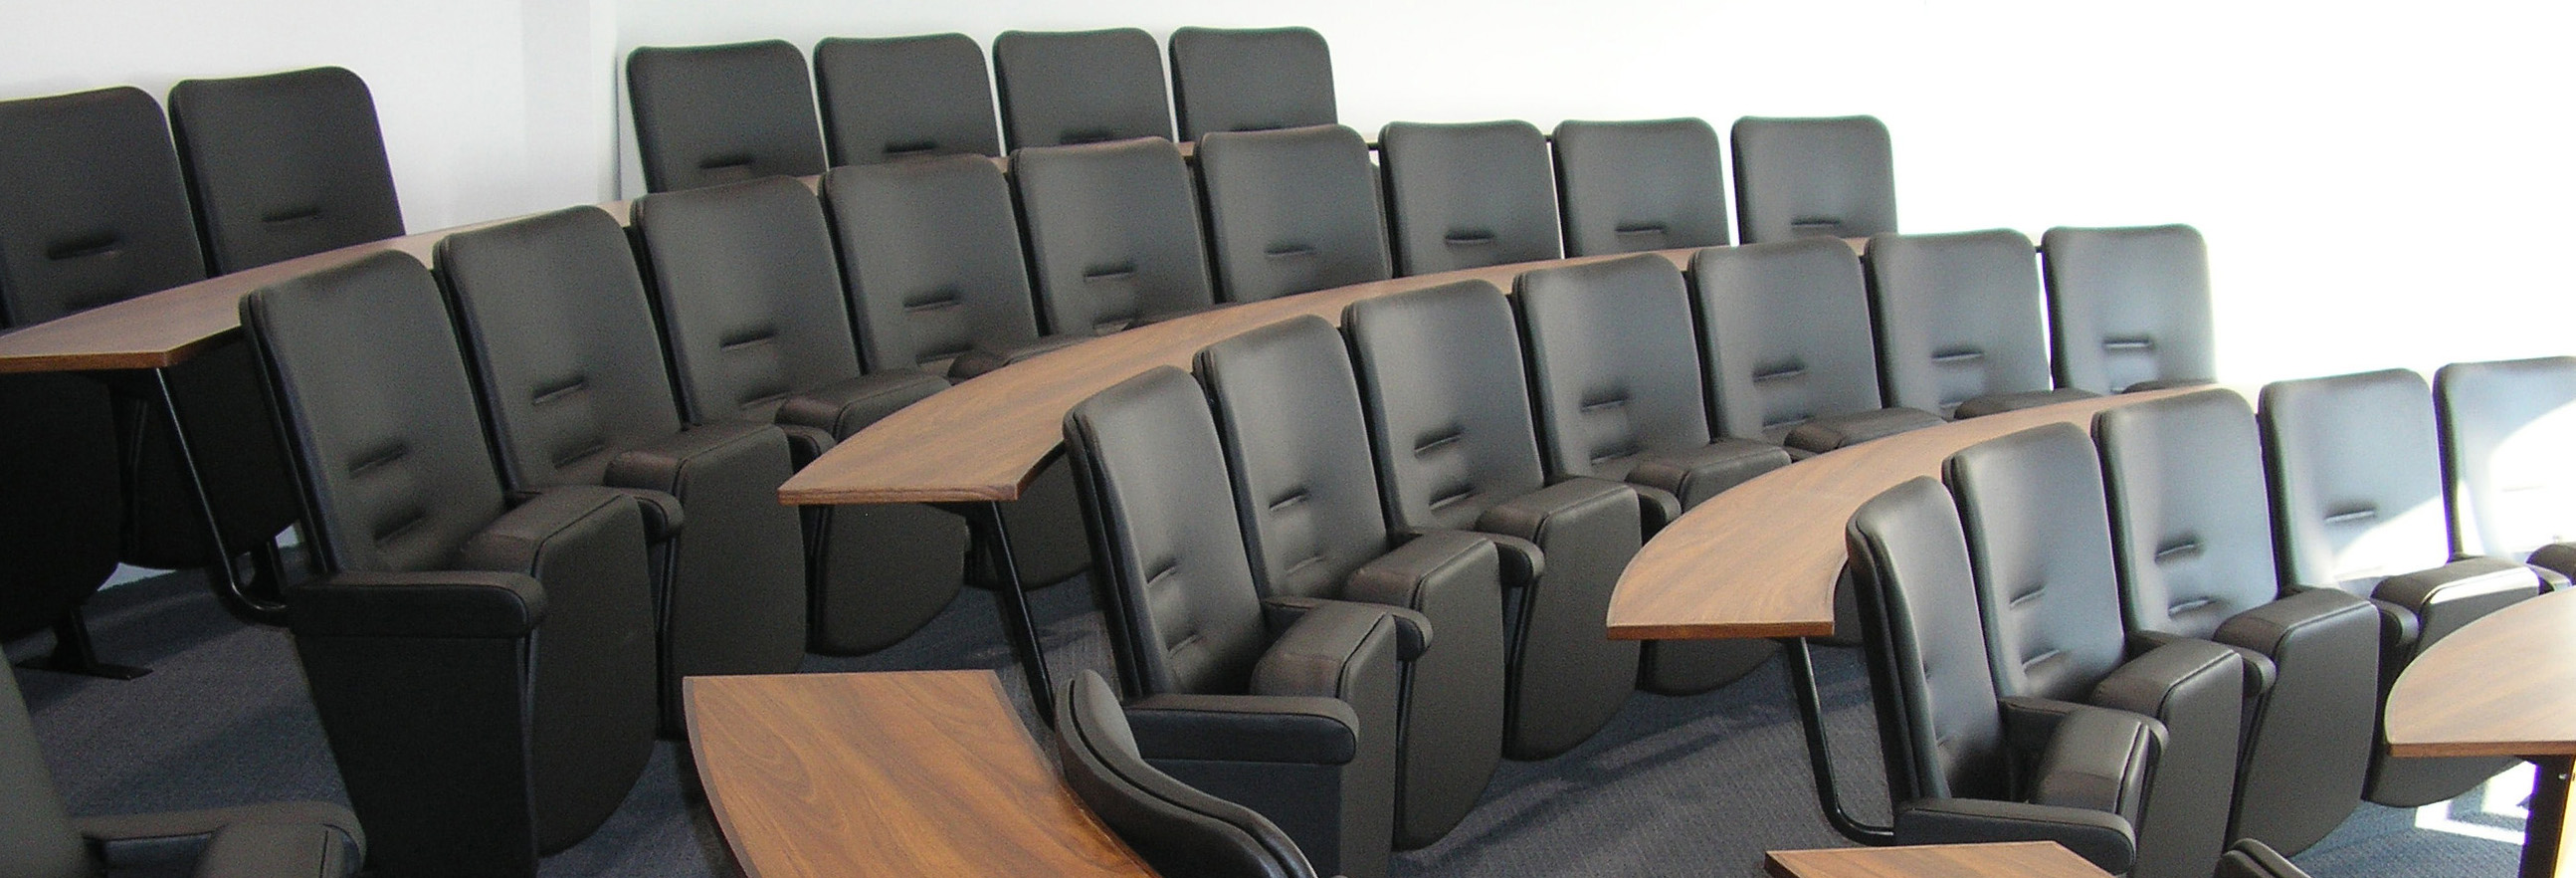 University lecture chairs upholstered with black vinyl